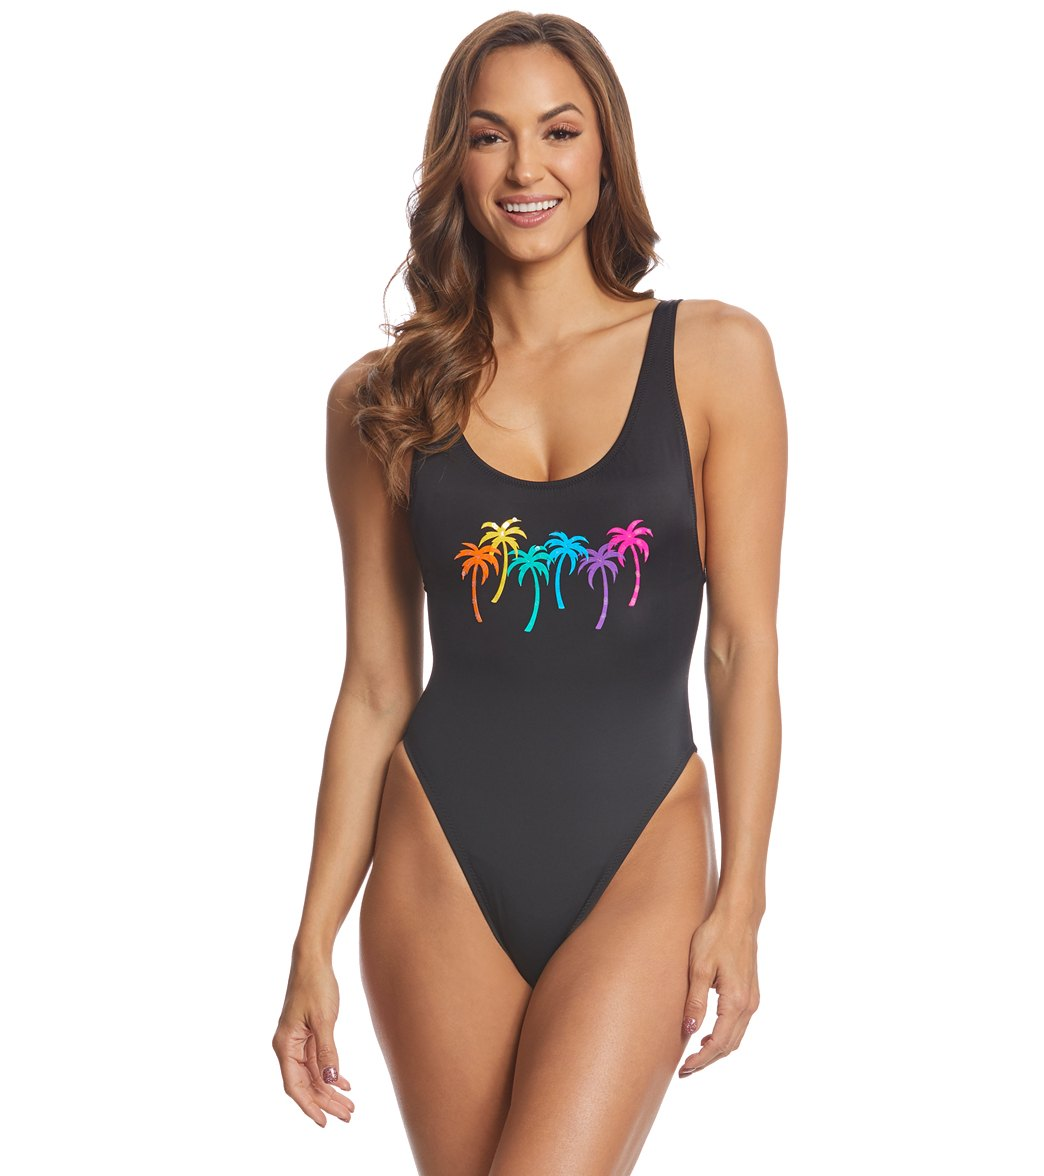 b2d04df35a148 Coco Rave Rainbow Bright Pamela High Leg One Piece Swimsuit at  SwimOutlet.com - Free Shipping